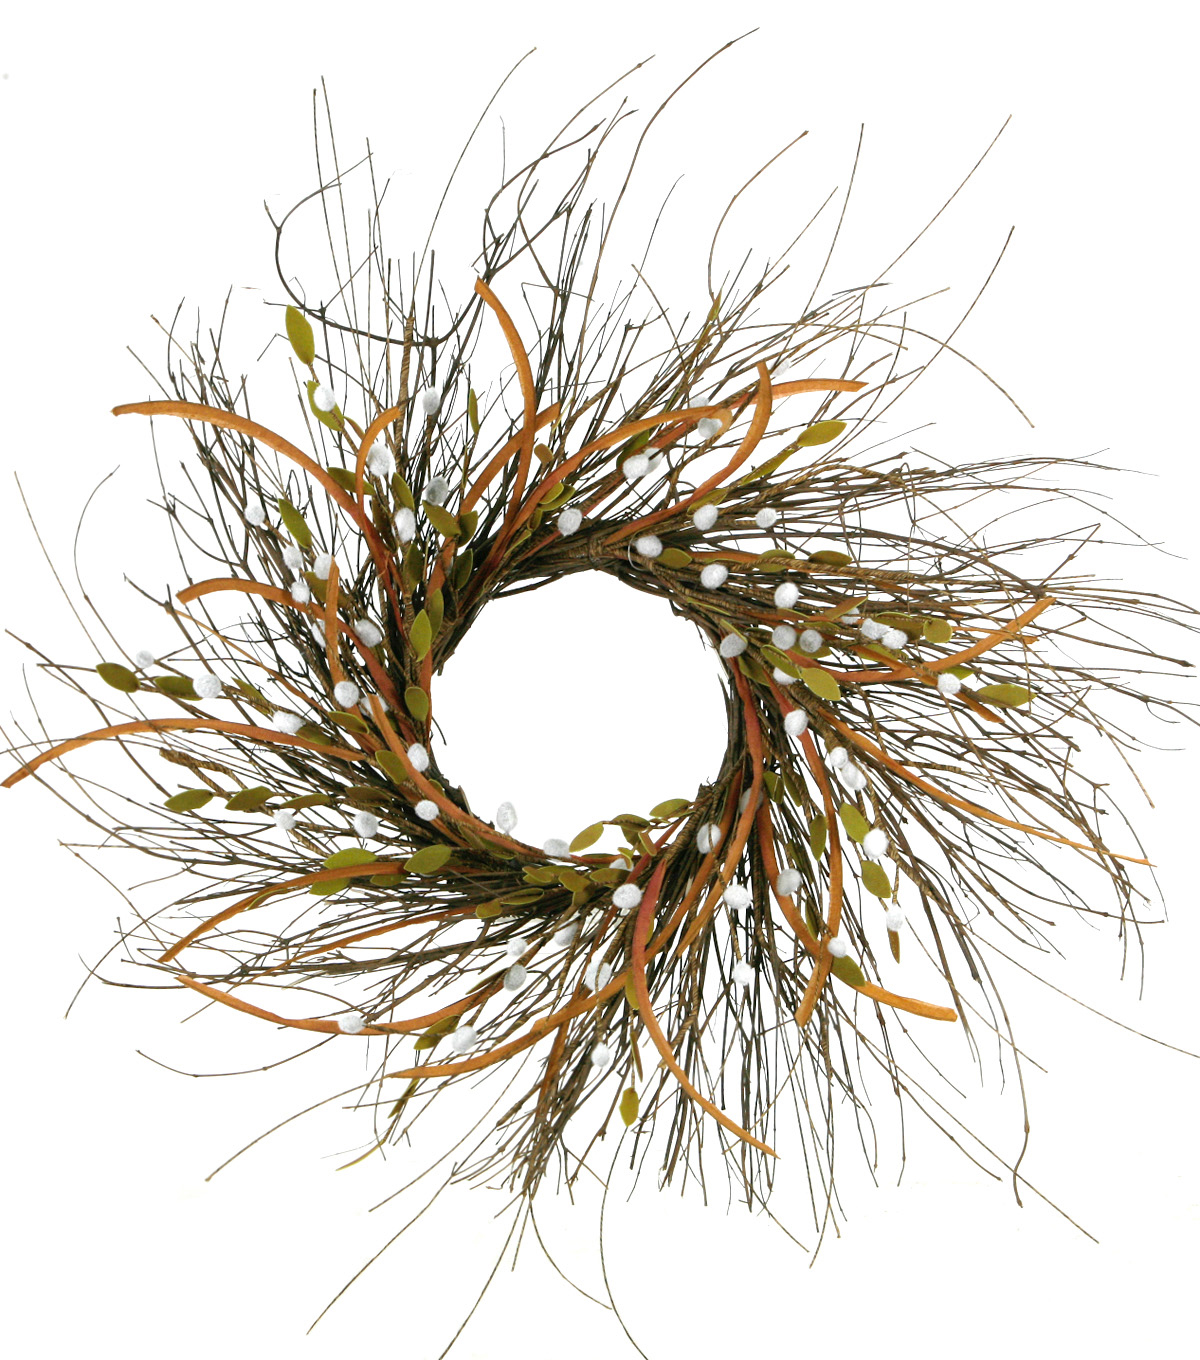 Blooming Autumn Pussy Willow & Twig Wreath-Green